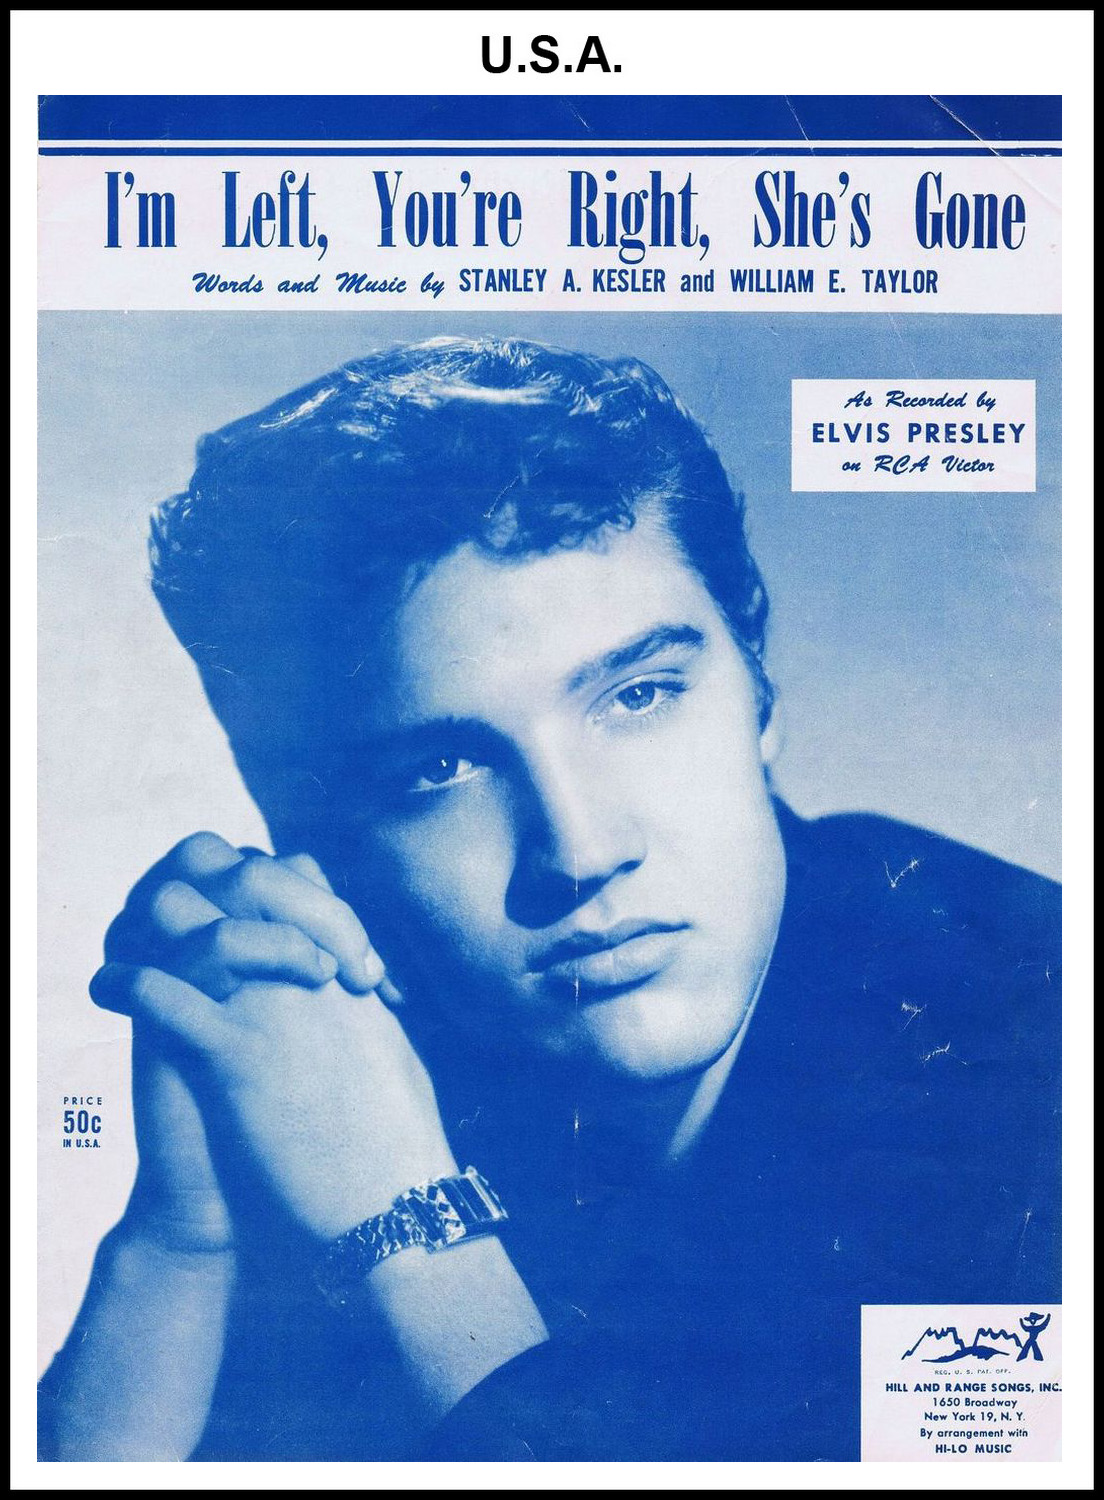 1955 - I'm Left, You're Right, She's Gone (USA 50c) (CHRIS GILES COLLECTION)